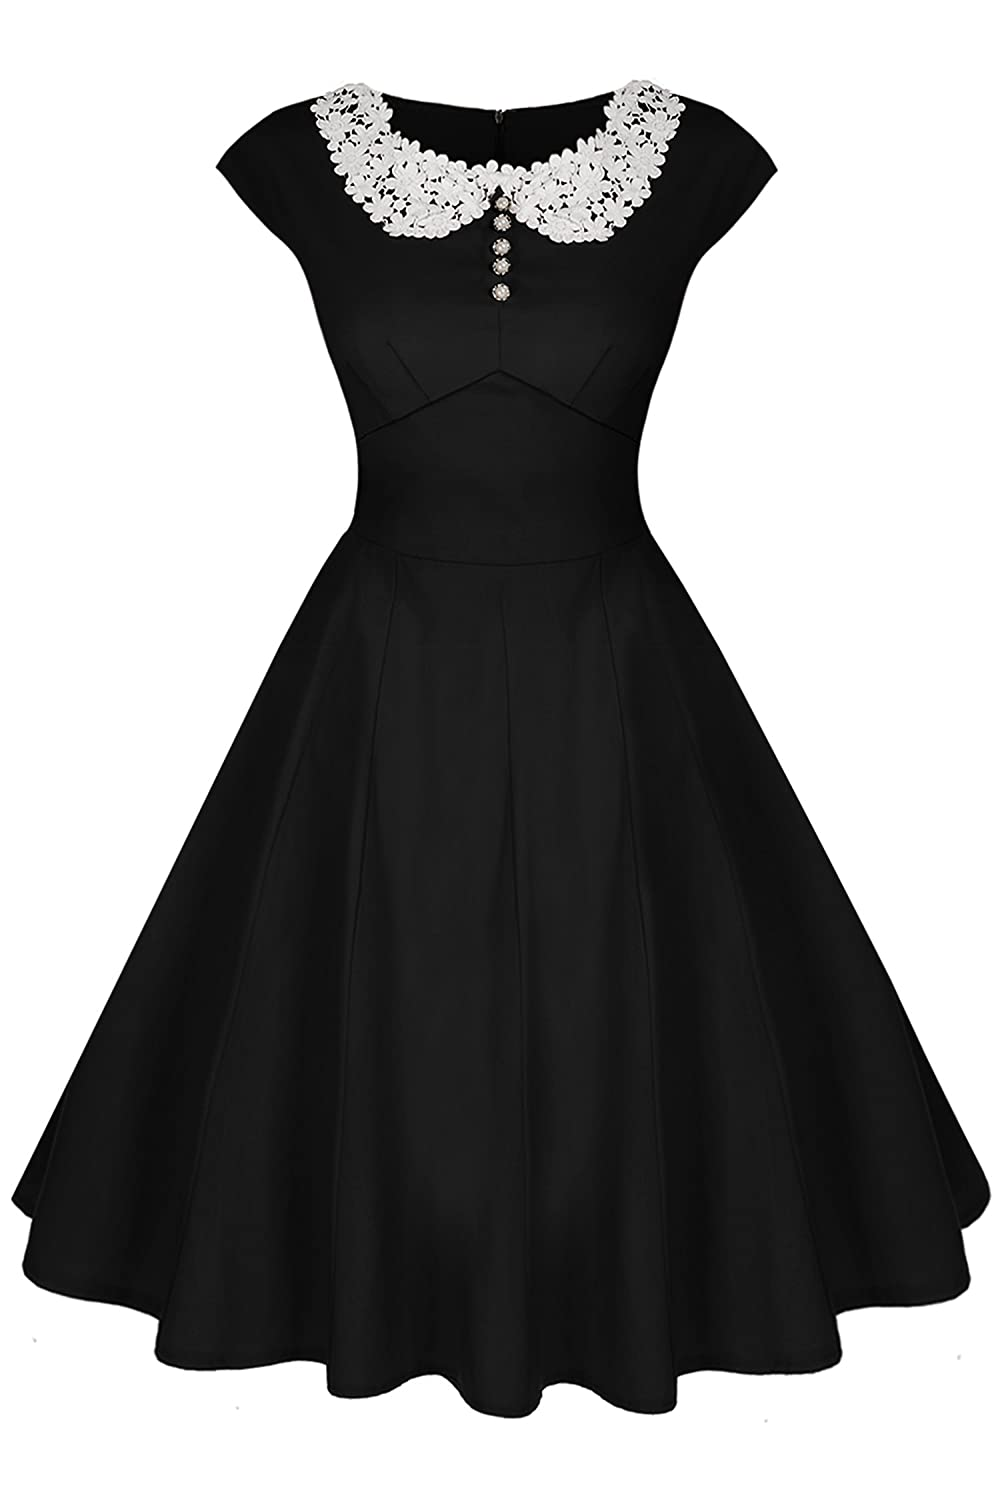 1950s Swing Dresses | 50s Swing Dress Audrey Hepburn Style 1940s Rockabilly Evening Dress  AT vintagedancer.com